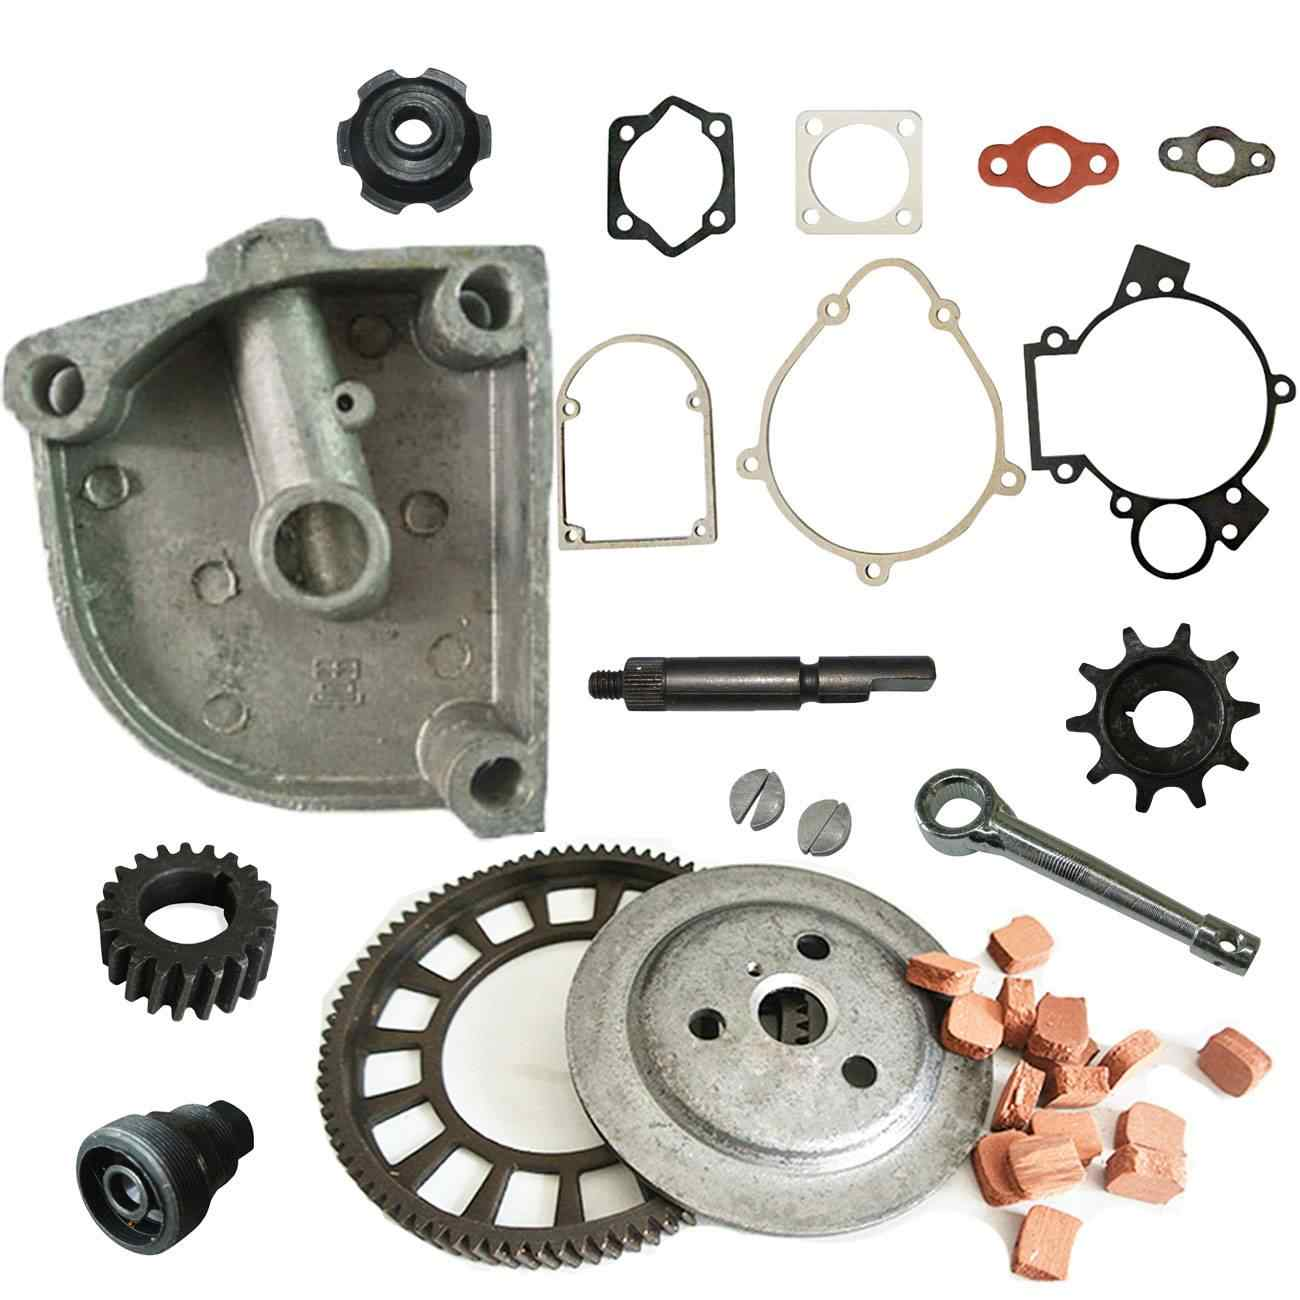 Supermotorparts 1pc Sprocket Clutch Cover Fits 49CC 66CC 80CC Engine Motor Motorized Bicycle